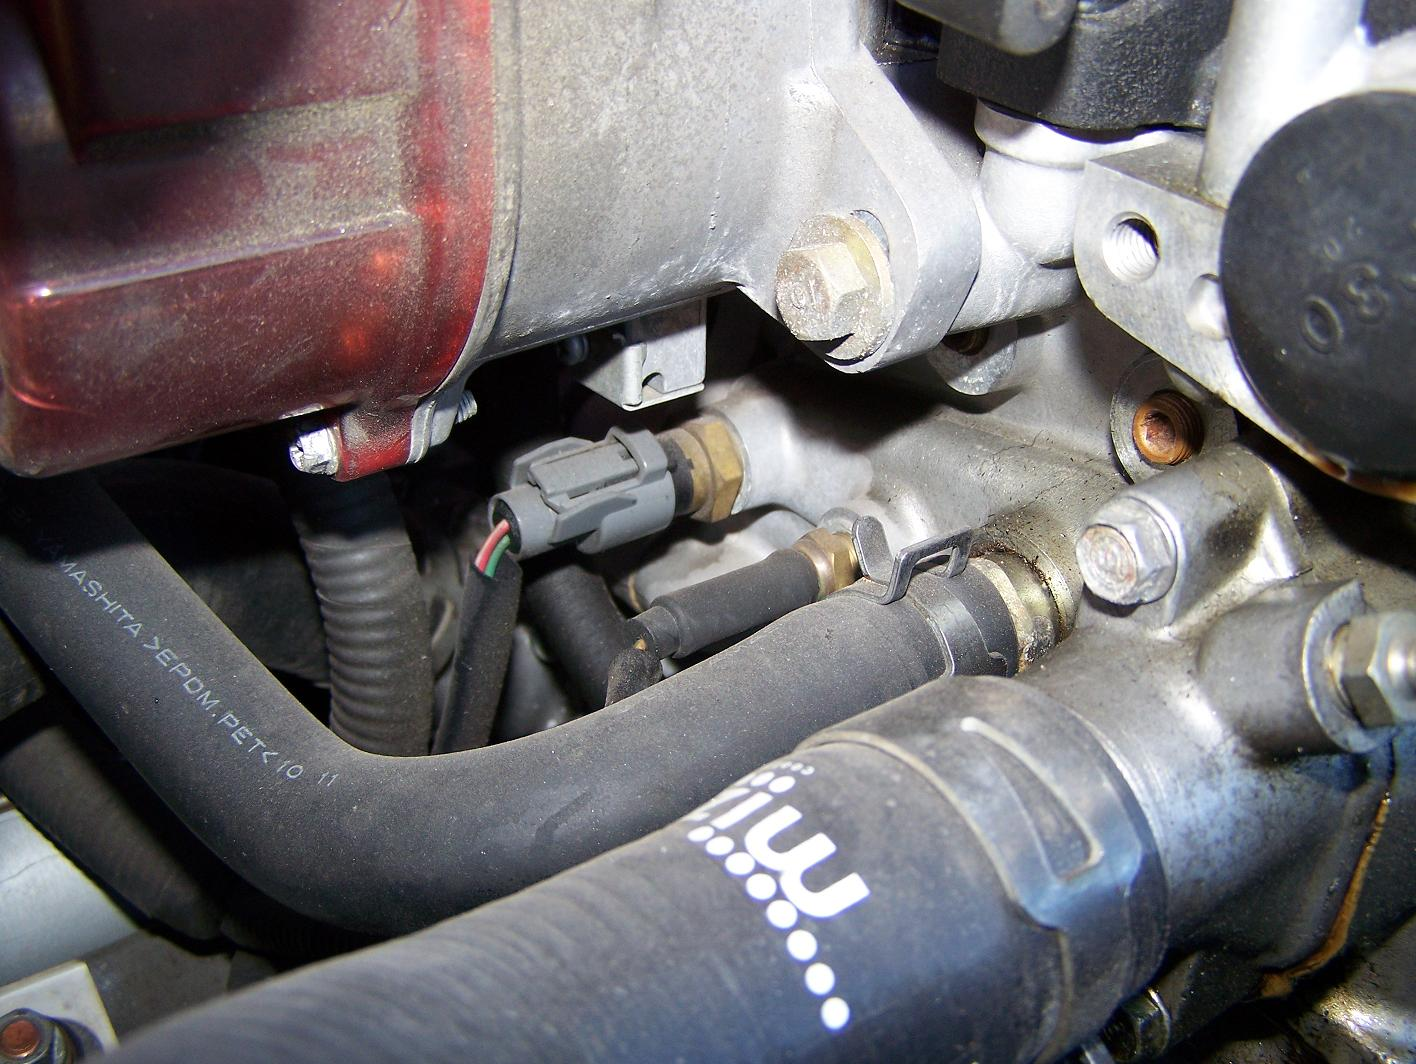 1997 honda civic fuel gauge wiring diagram with Dtc P0118 How To Change A Honda Accord Ect on Watch as well Trailer Electrical Plug 7 Pin Round 4 Wire Hookup Wiring Way In Diagram moreover Mazda Miata Engine Oil Filter Location besides Dtc P0118 How To Change A Honda Accord Ect together with FV6a 8815.